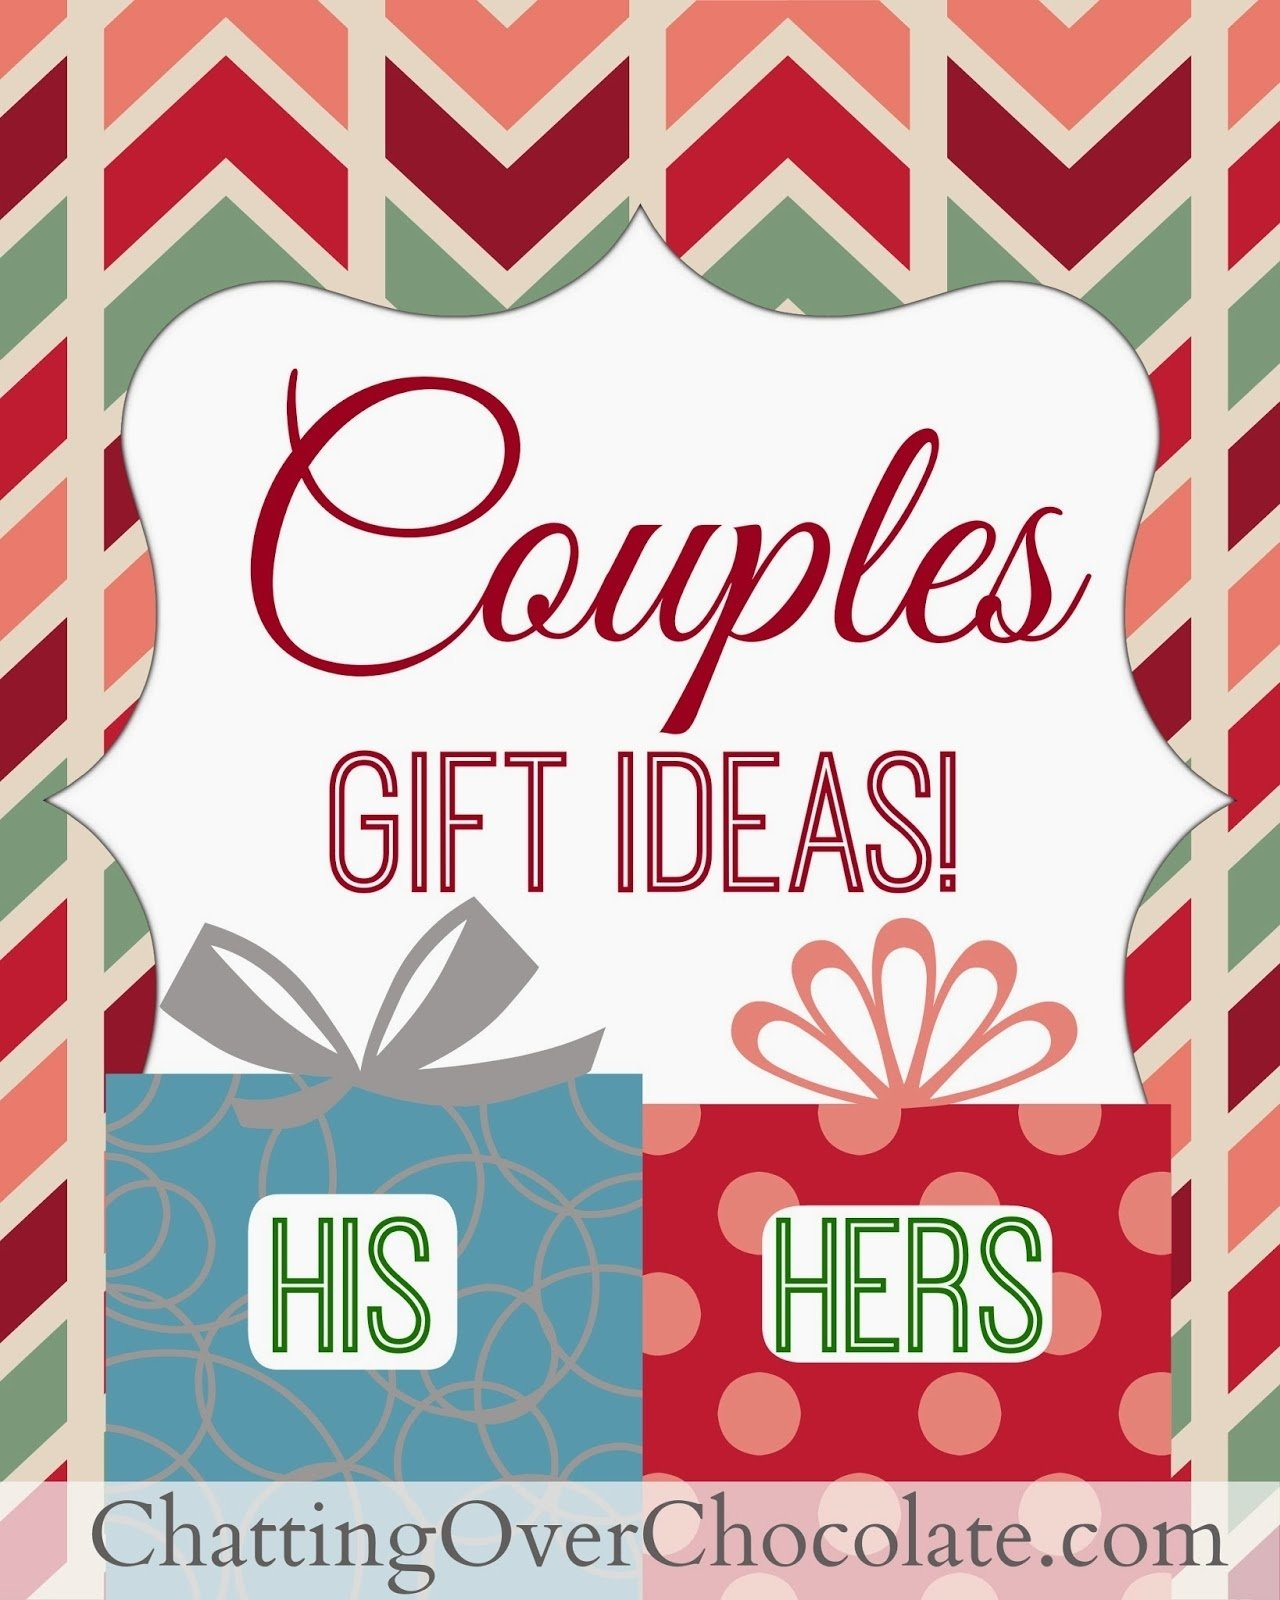 chatting over chocolate: his & hers gift ideas! {couples gift giving